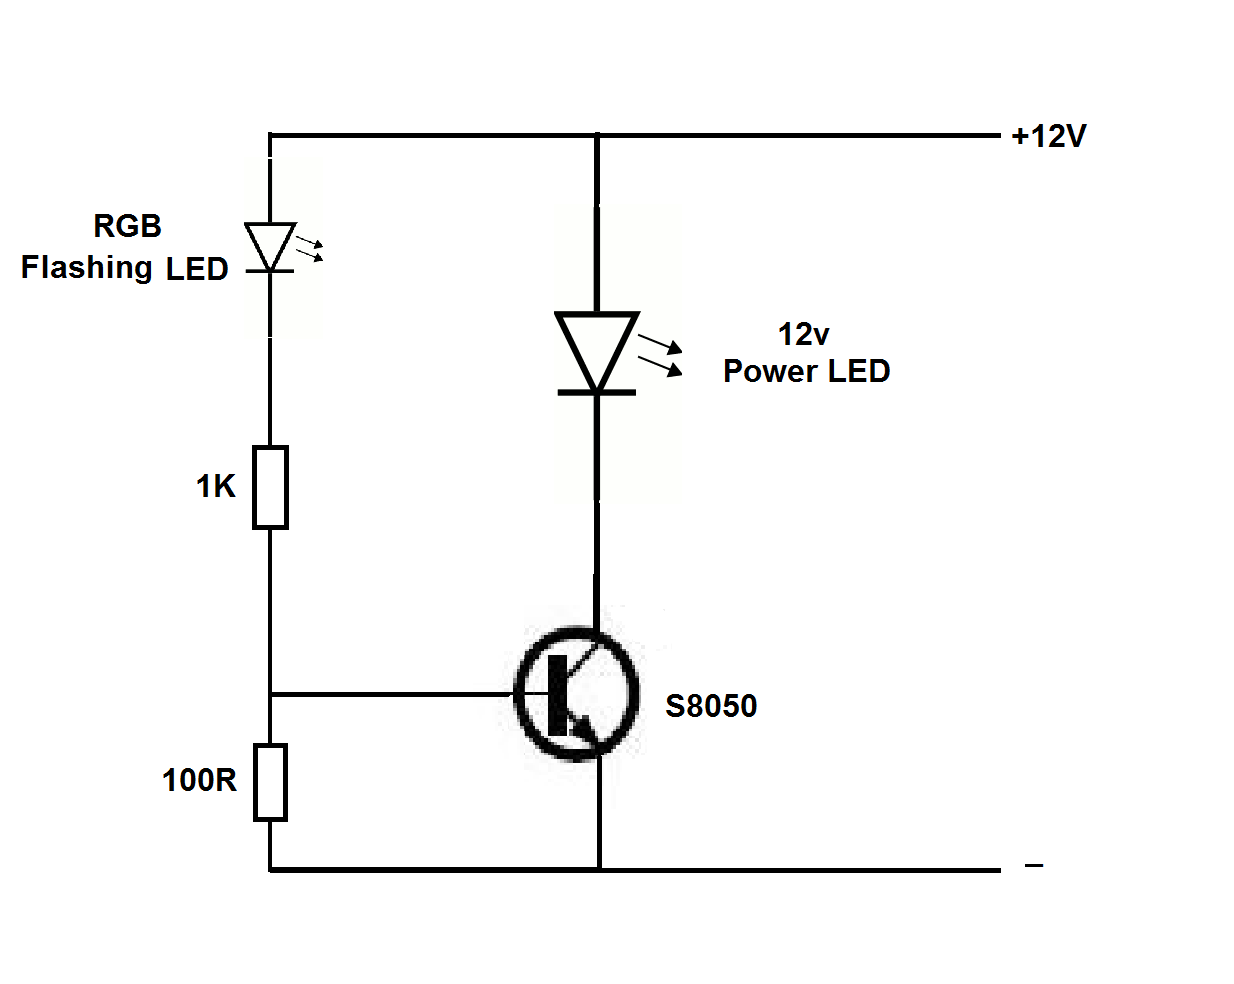 flashing led circuits